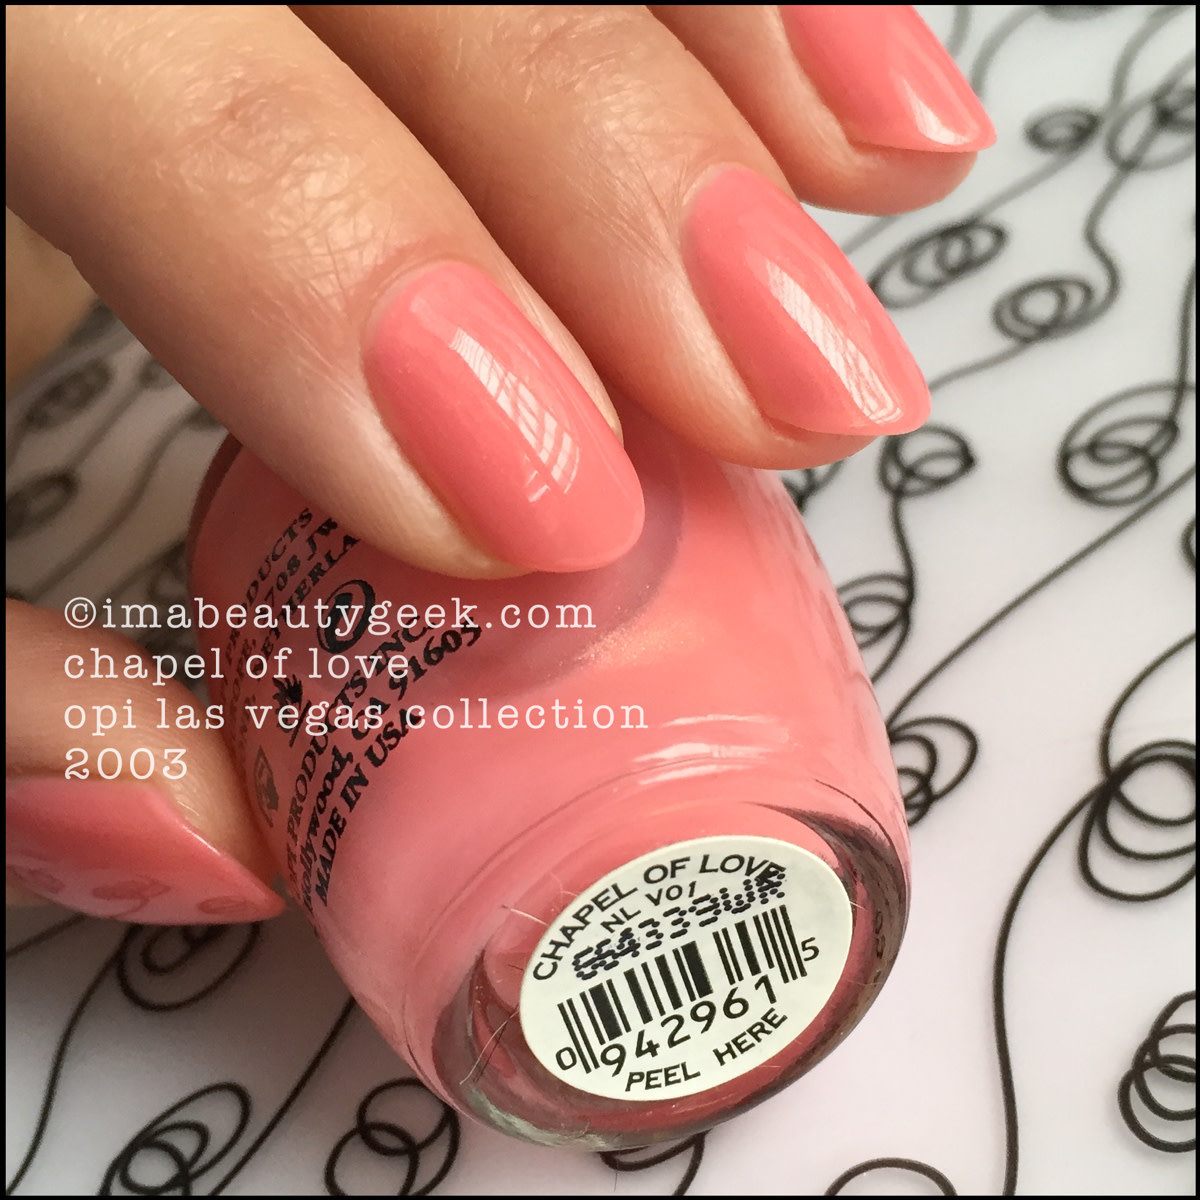 OPI Chapel of Love – OPI Las Vegas Collection 2003